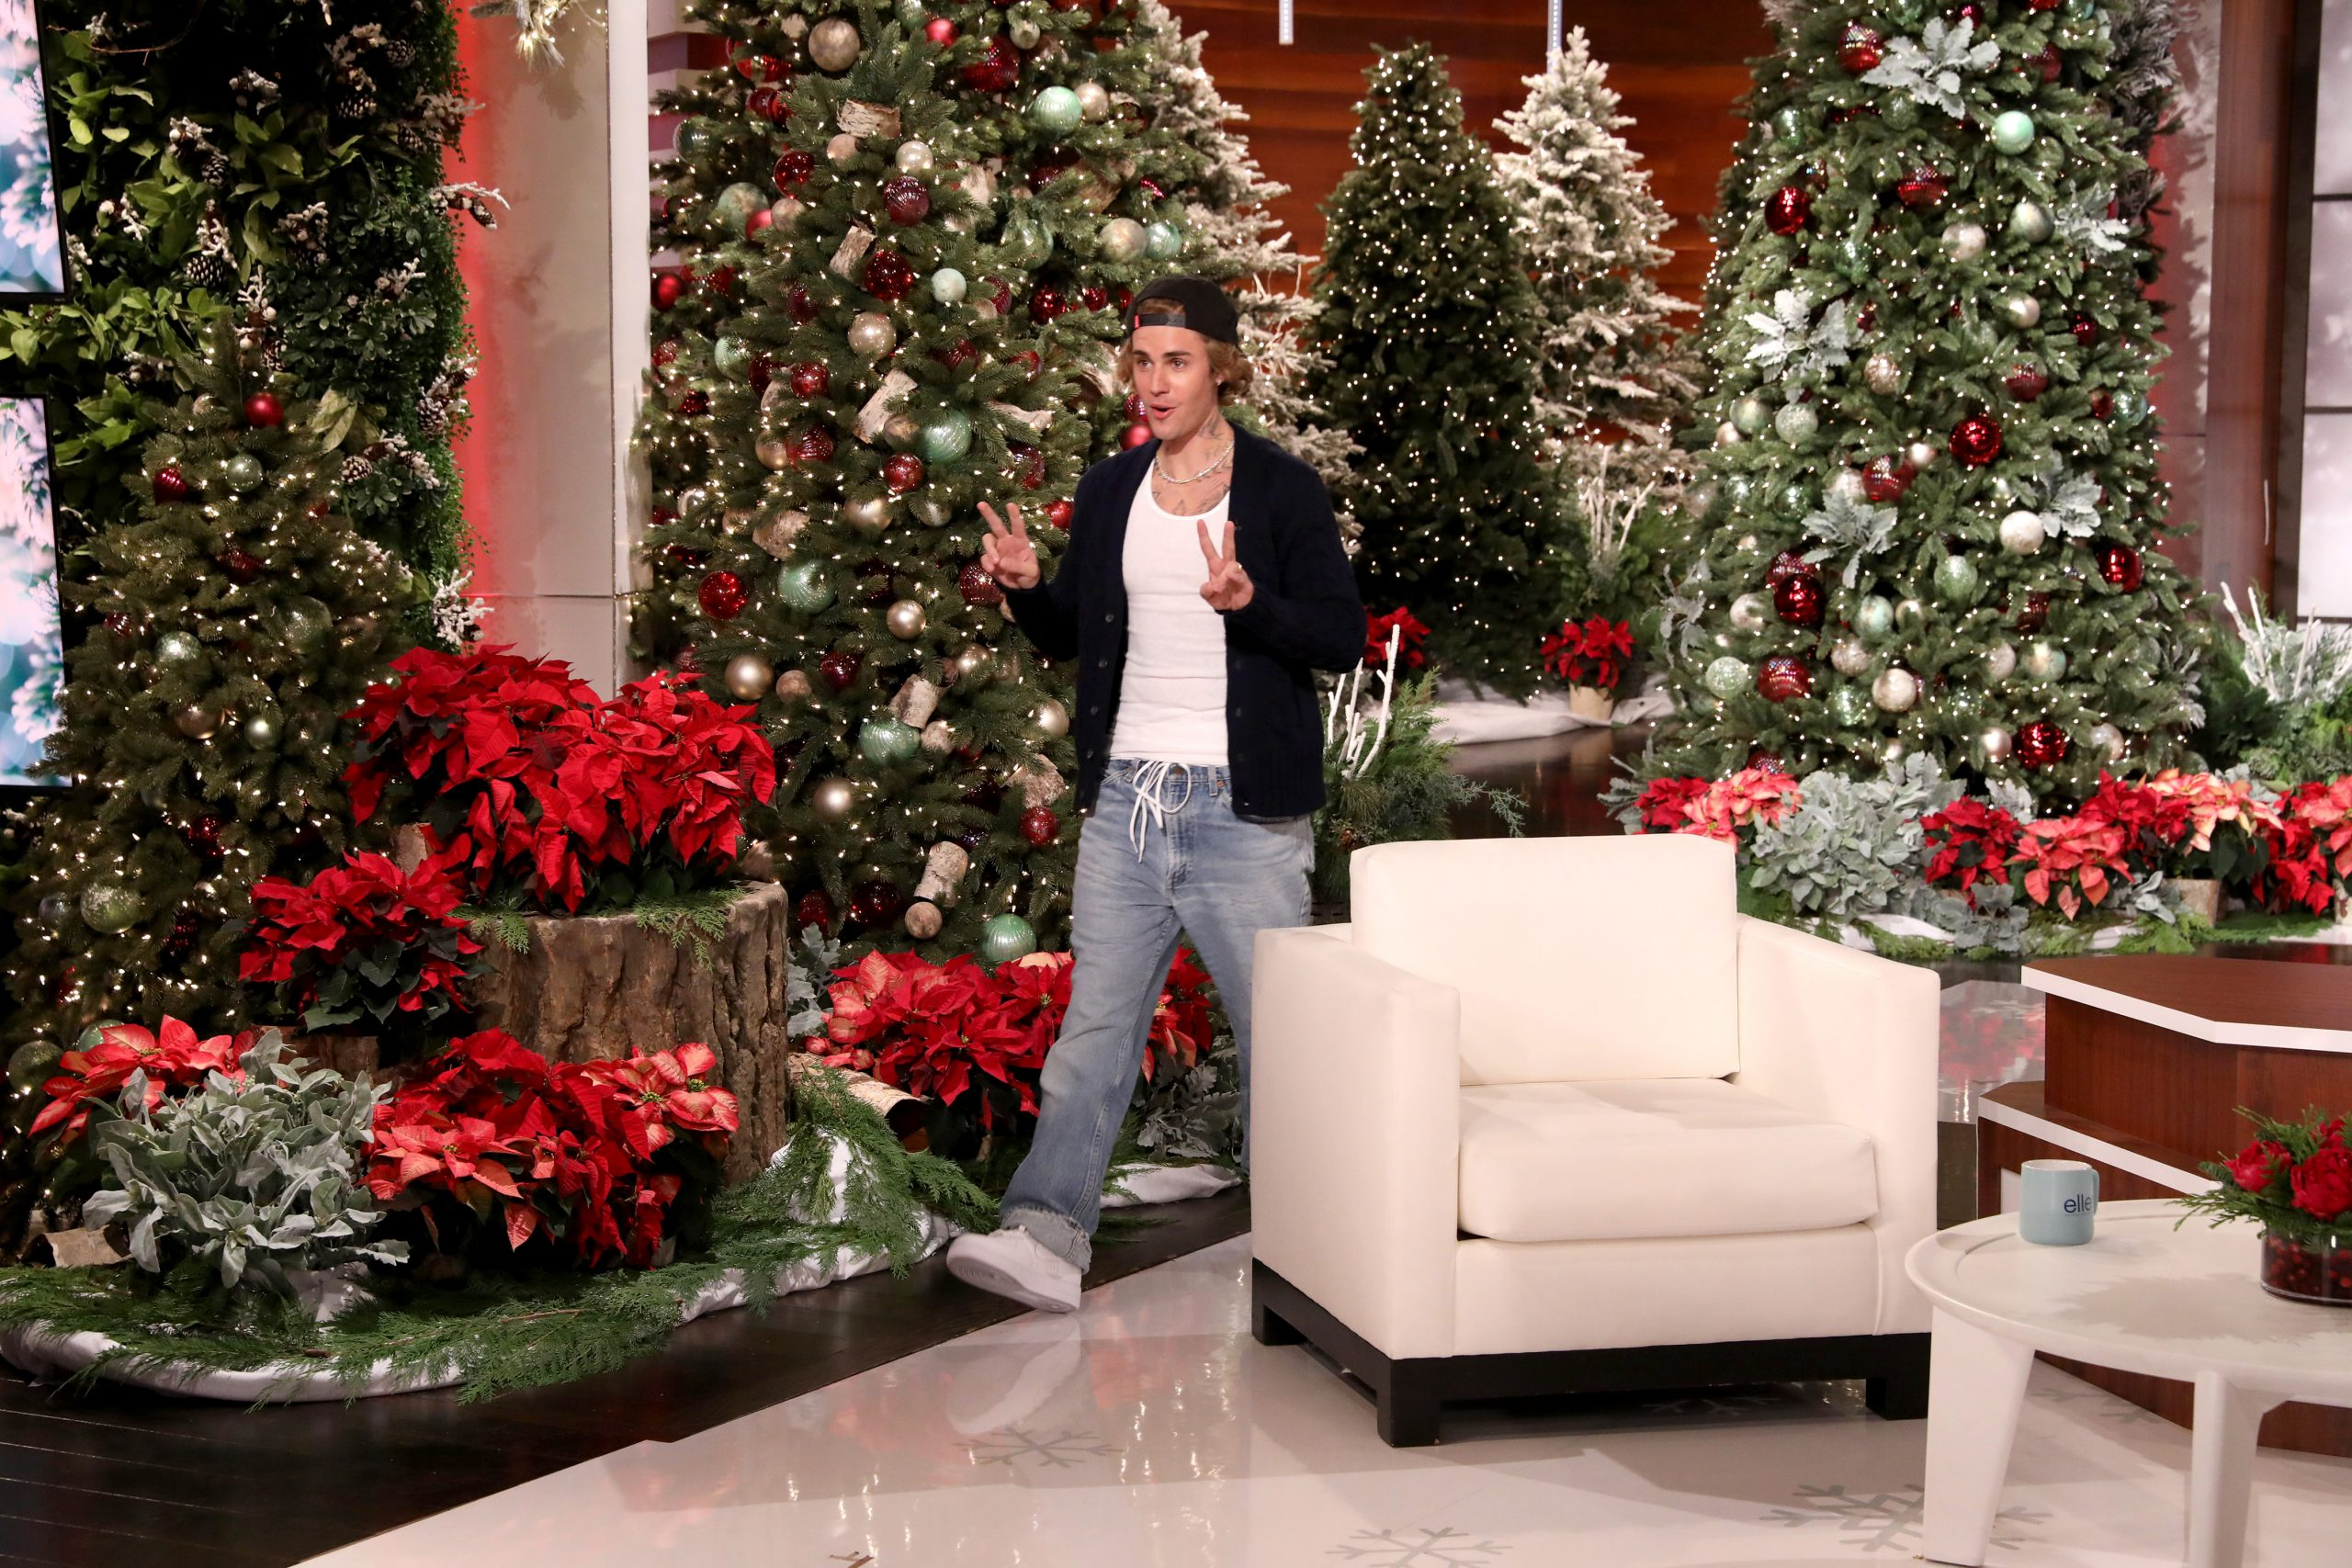 Ellens Christmas At Home Giveaway 2021 Justin Bieber Chats About Hailey S Thanksgiving Cooking His Recent Performances Tattoos More On Ellen Degeneres Show Watch Now